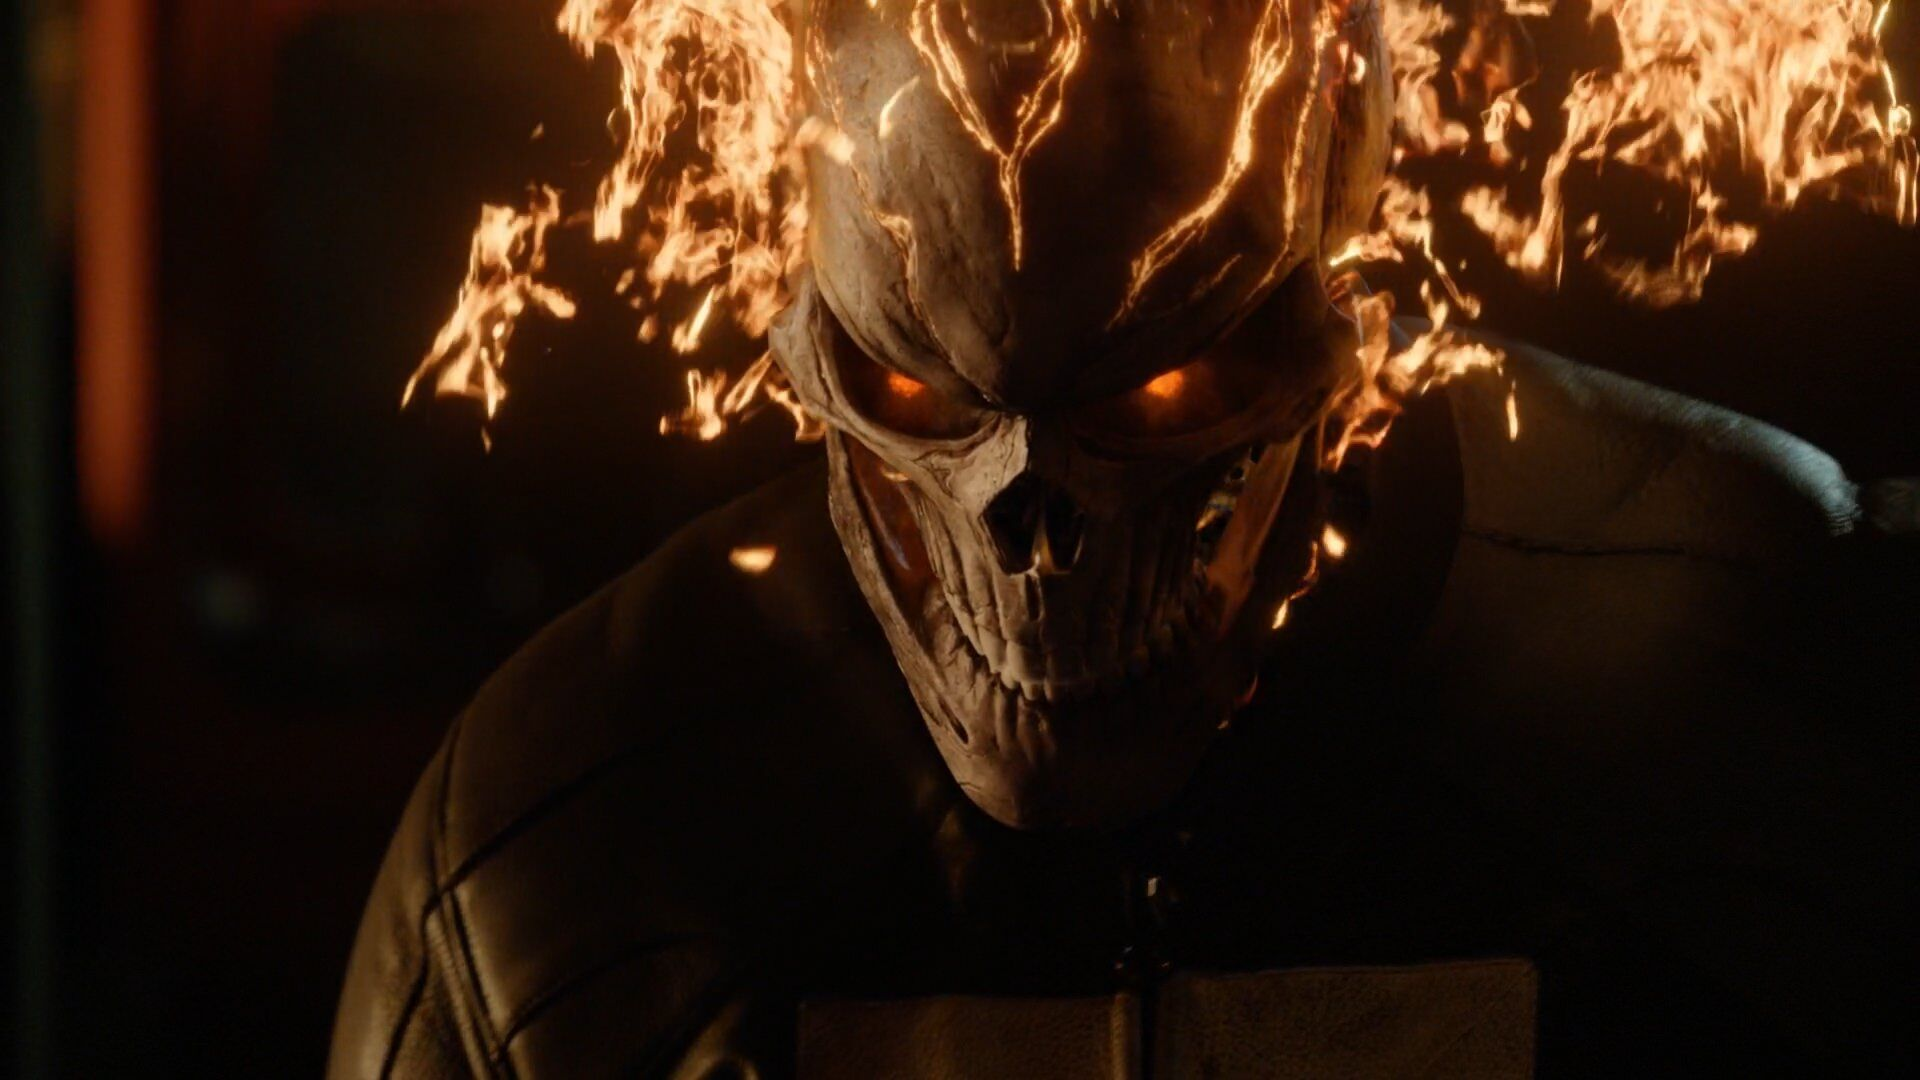 Are there now two Ghost Riders in Agents of SHIELD?